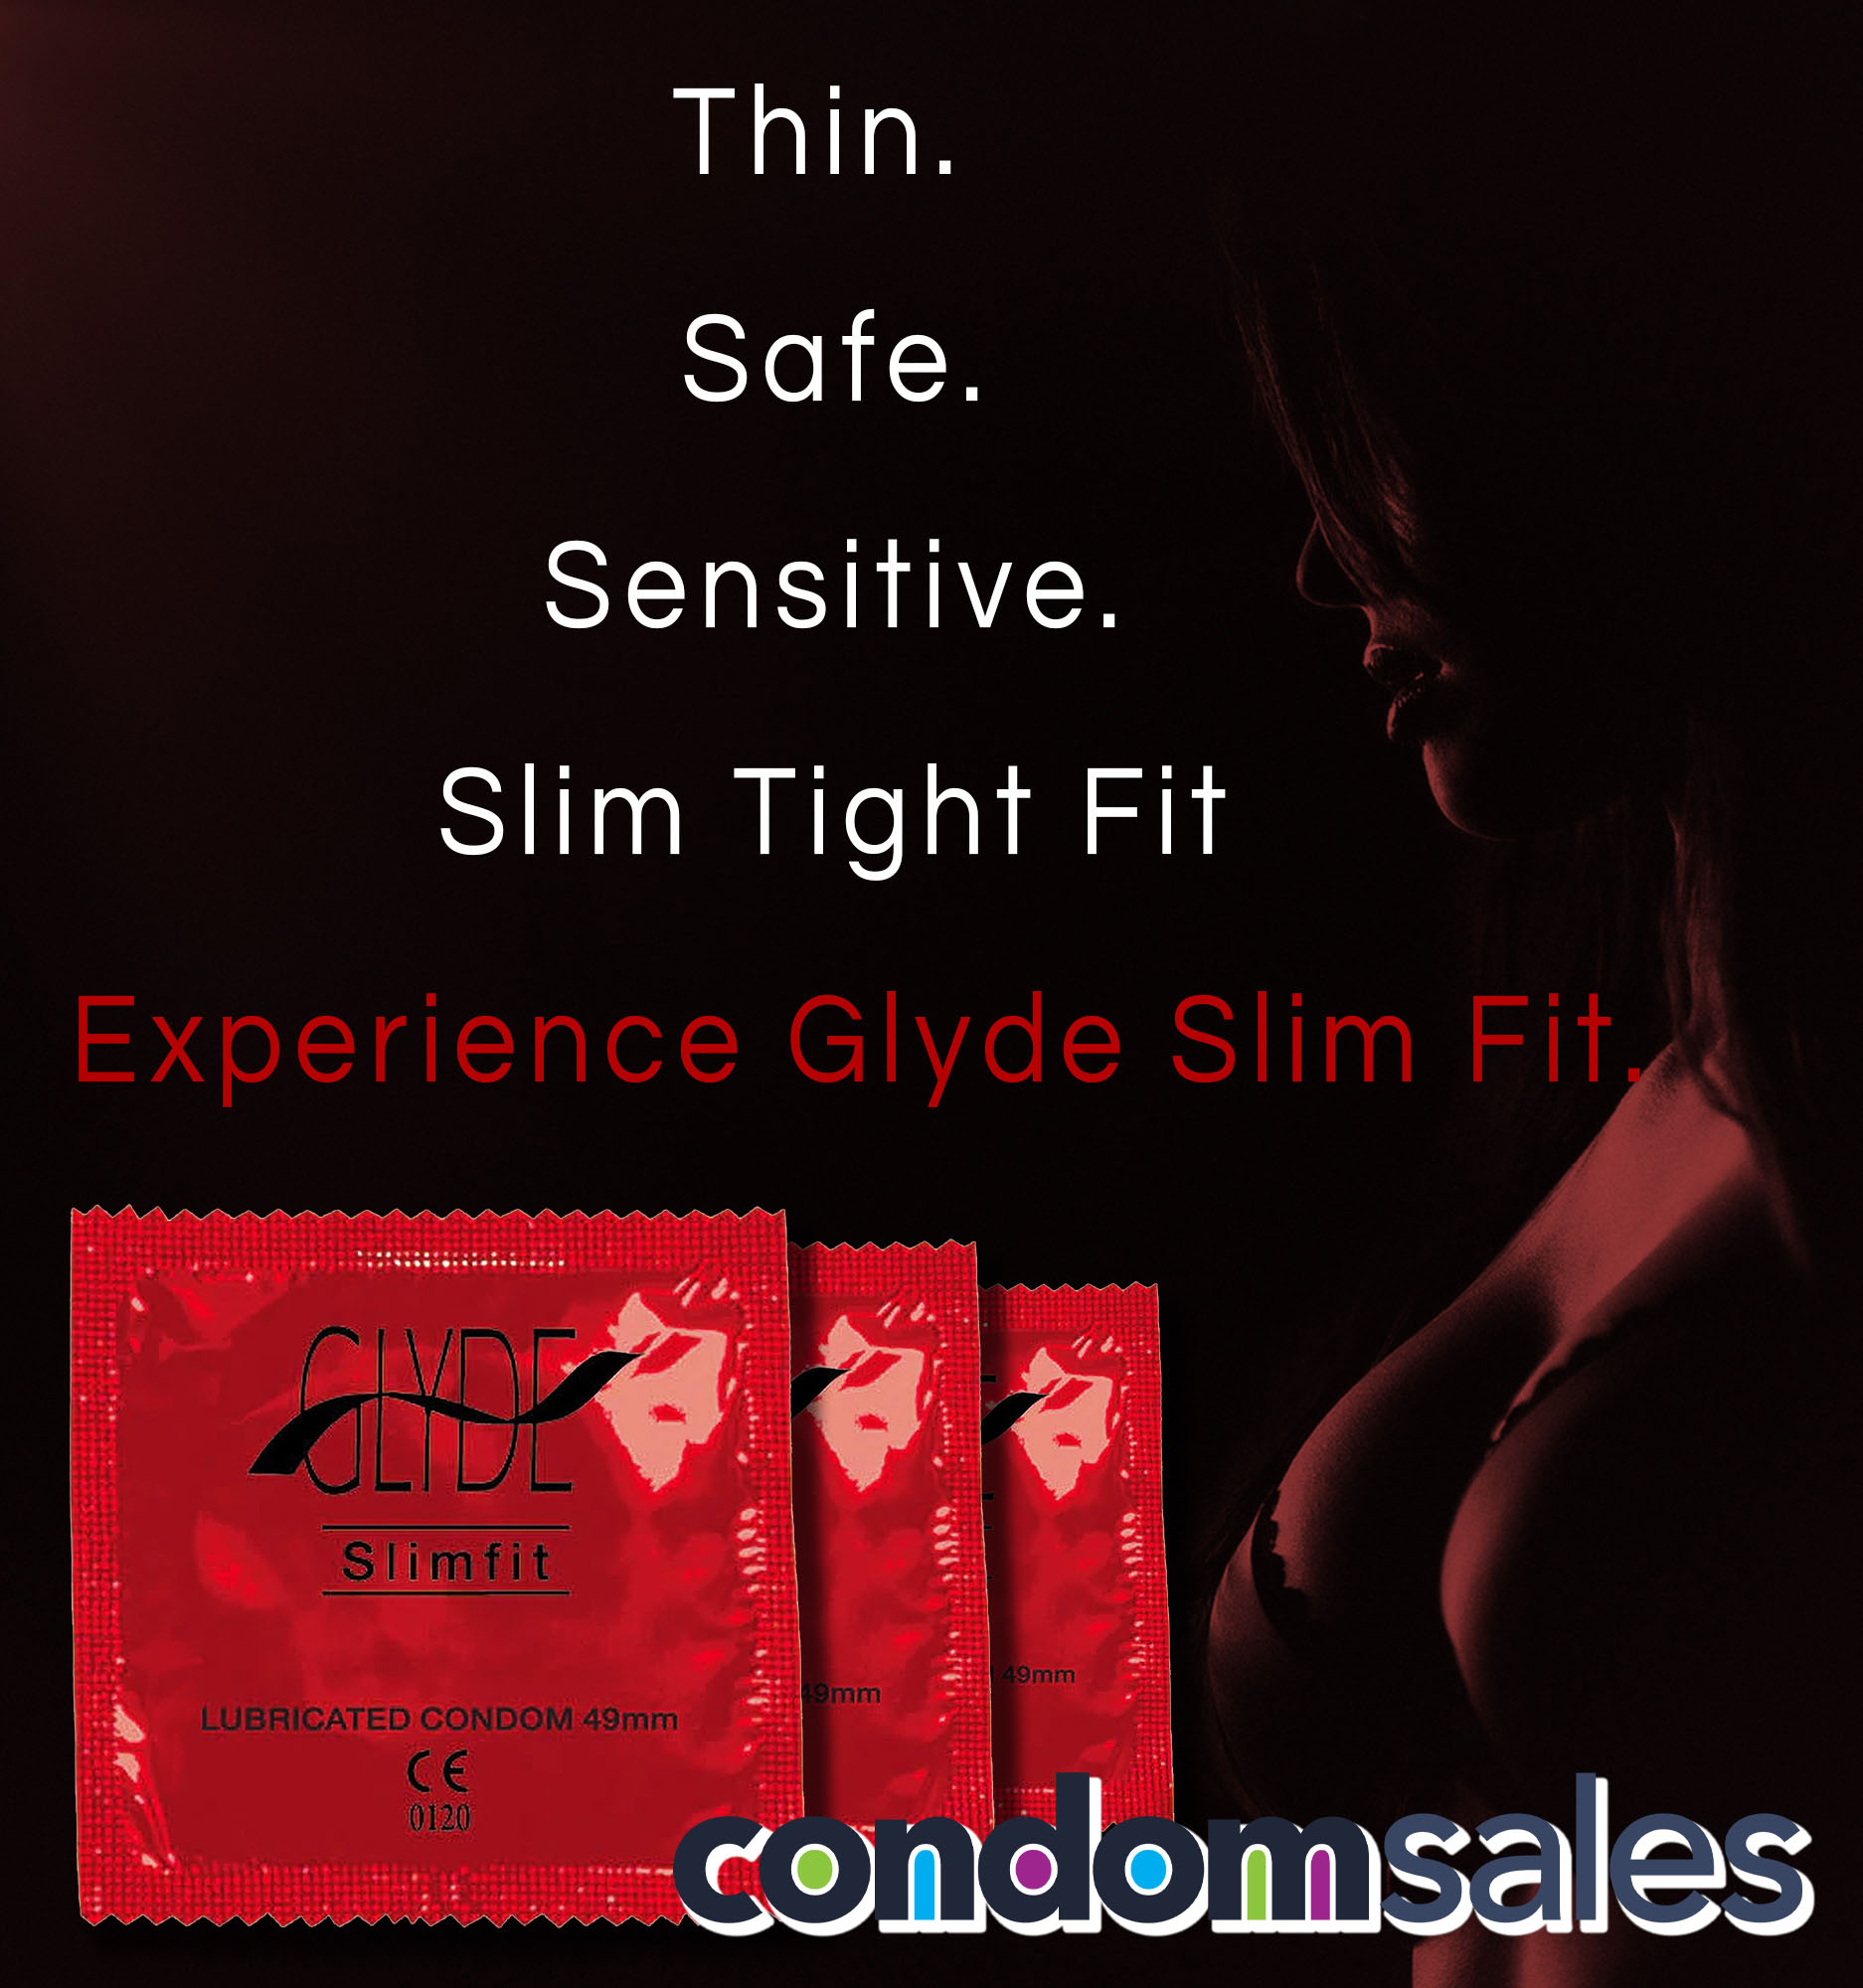 Glyde Slim Fit 49mm Small Condoms (100 Bulk Pack)